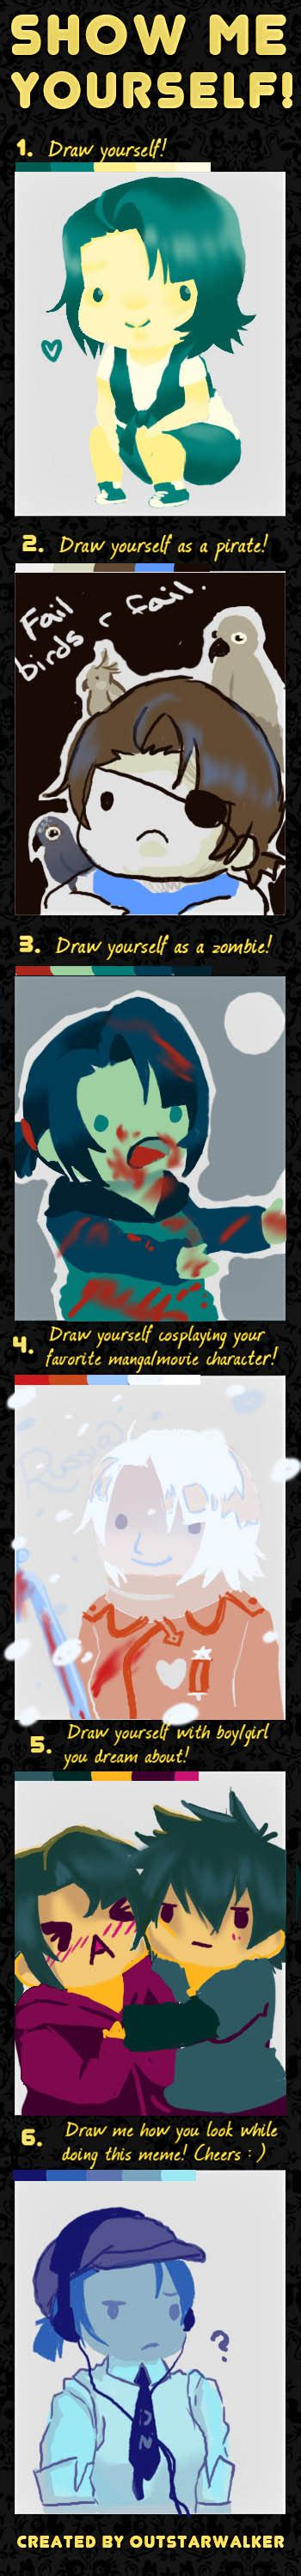 show me some pics of yourself show me yourself colour scheme by narufma on deviantart